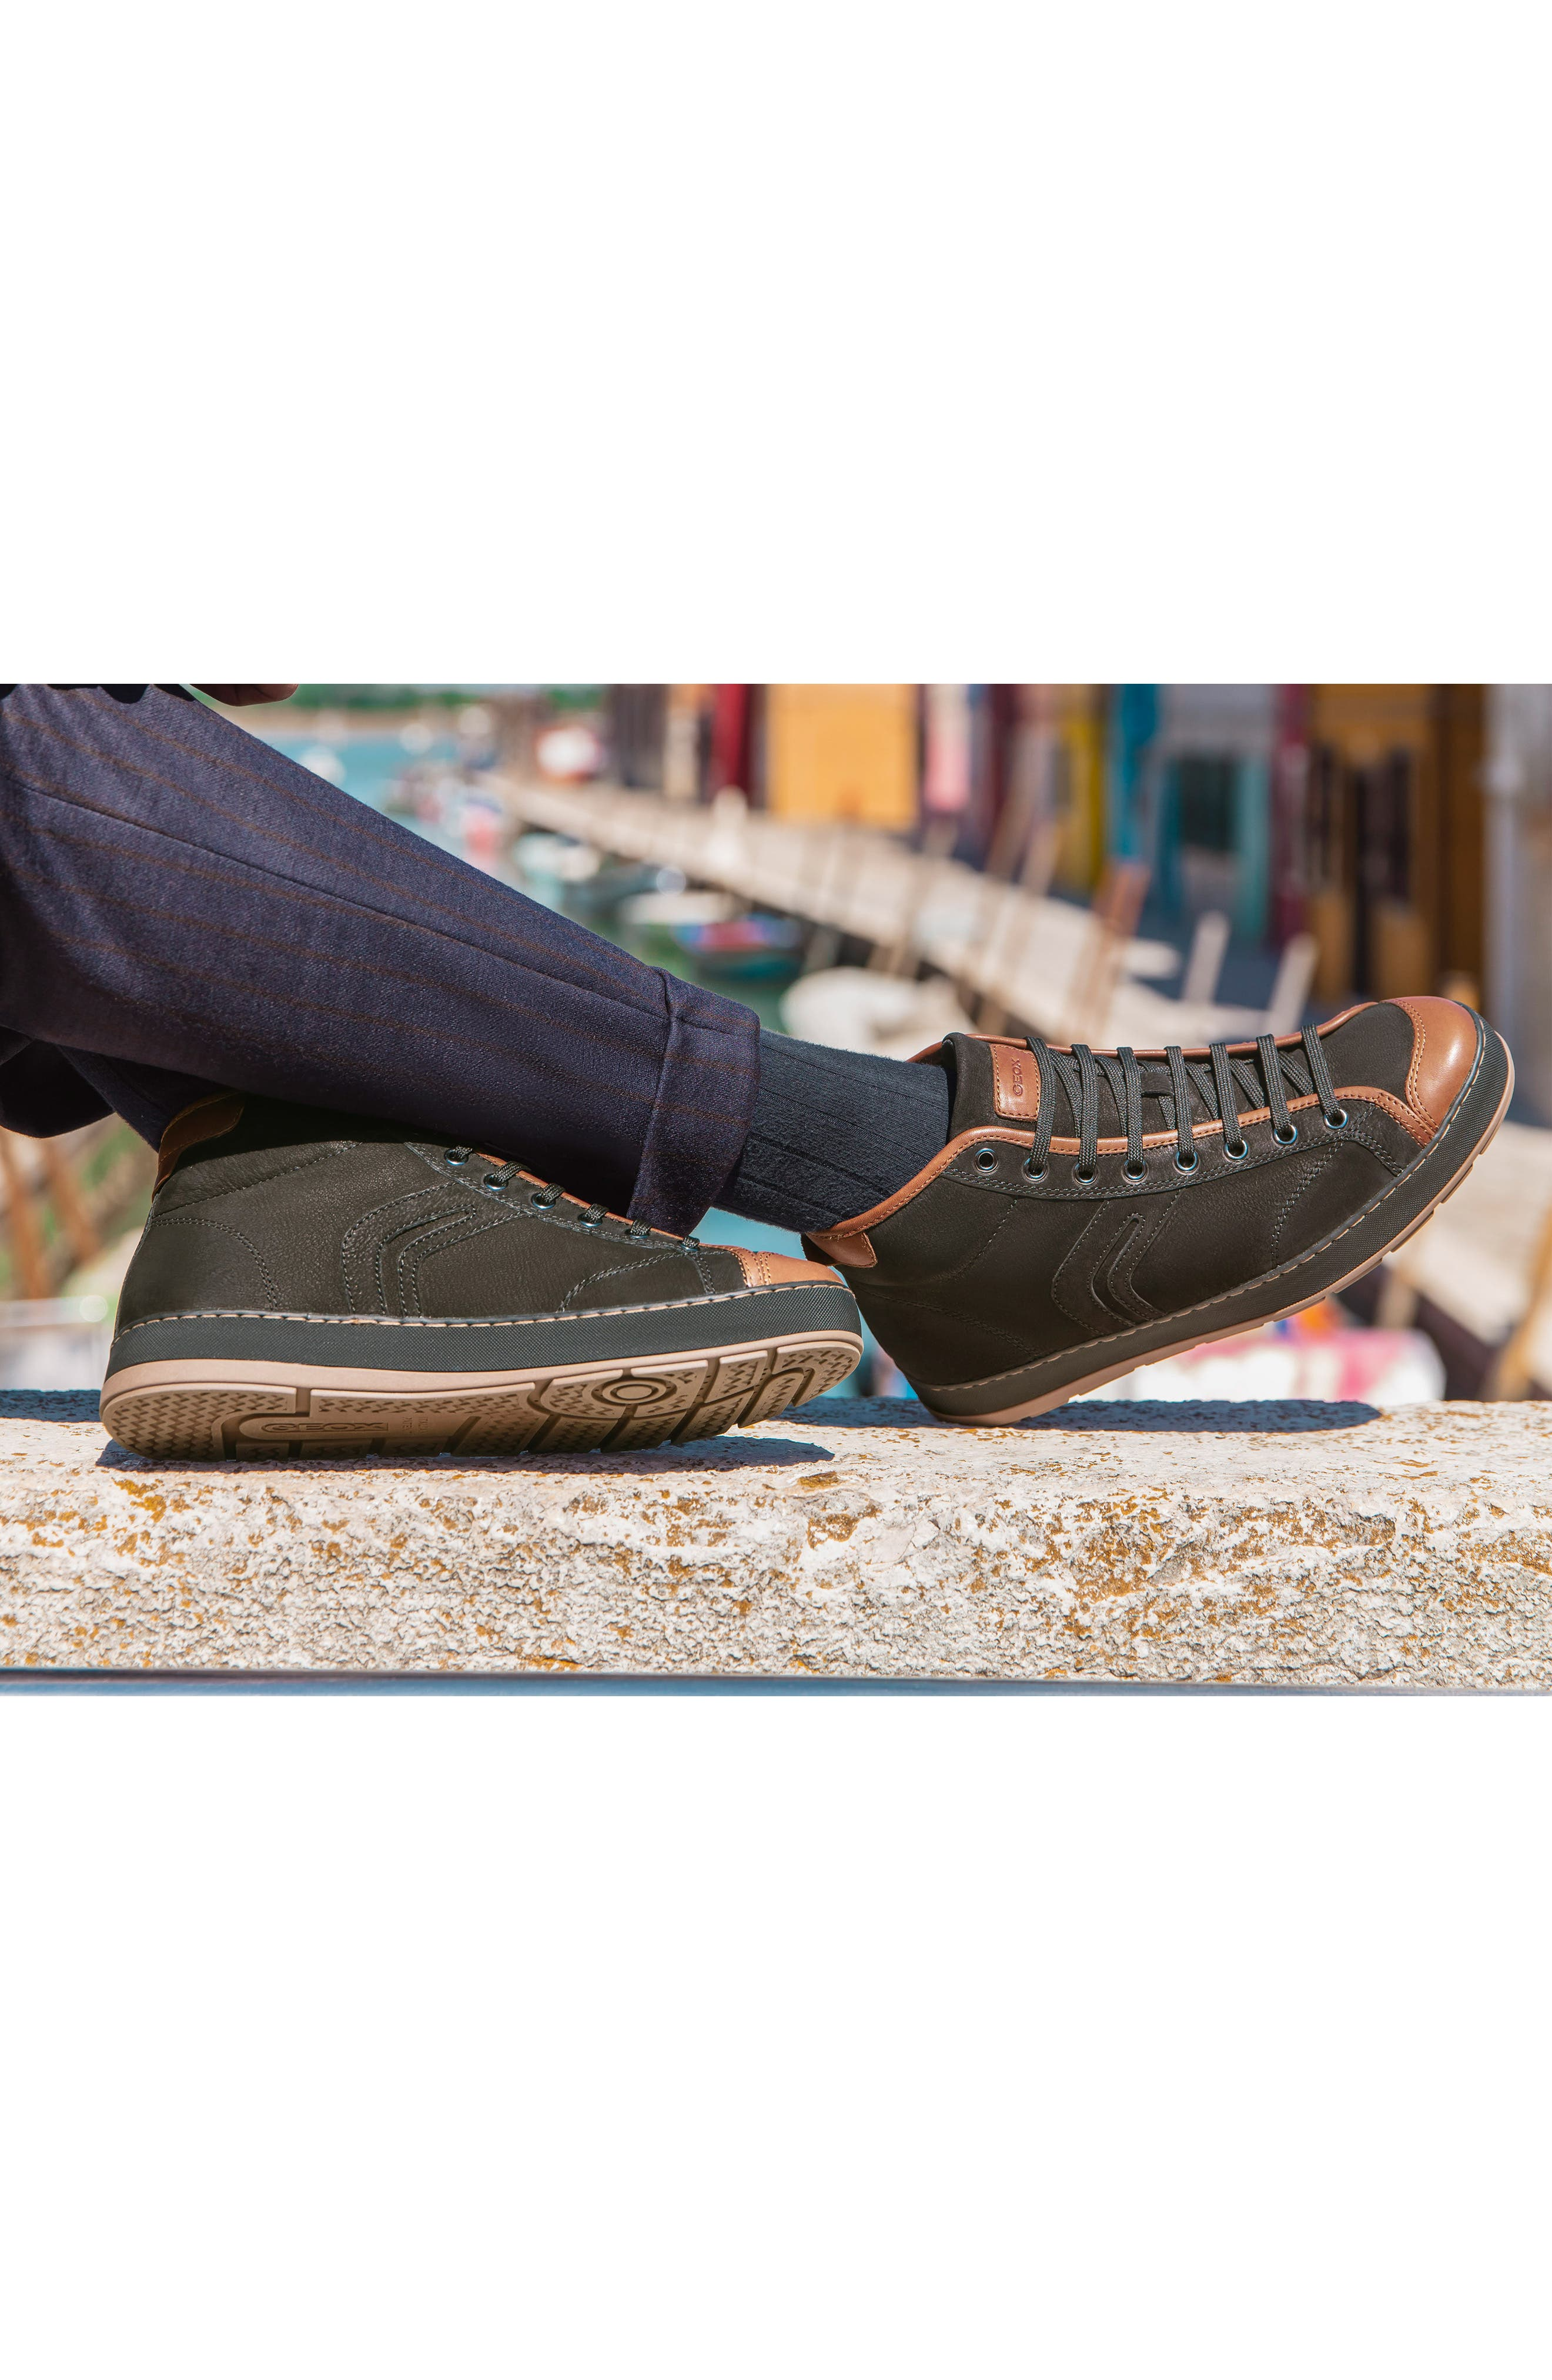 Ariam High Top Sneaker,                             Alternate thumbnail 7, color,                             203